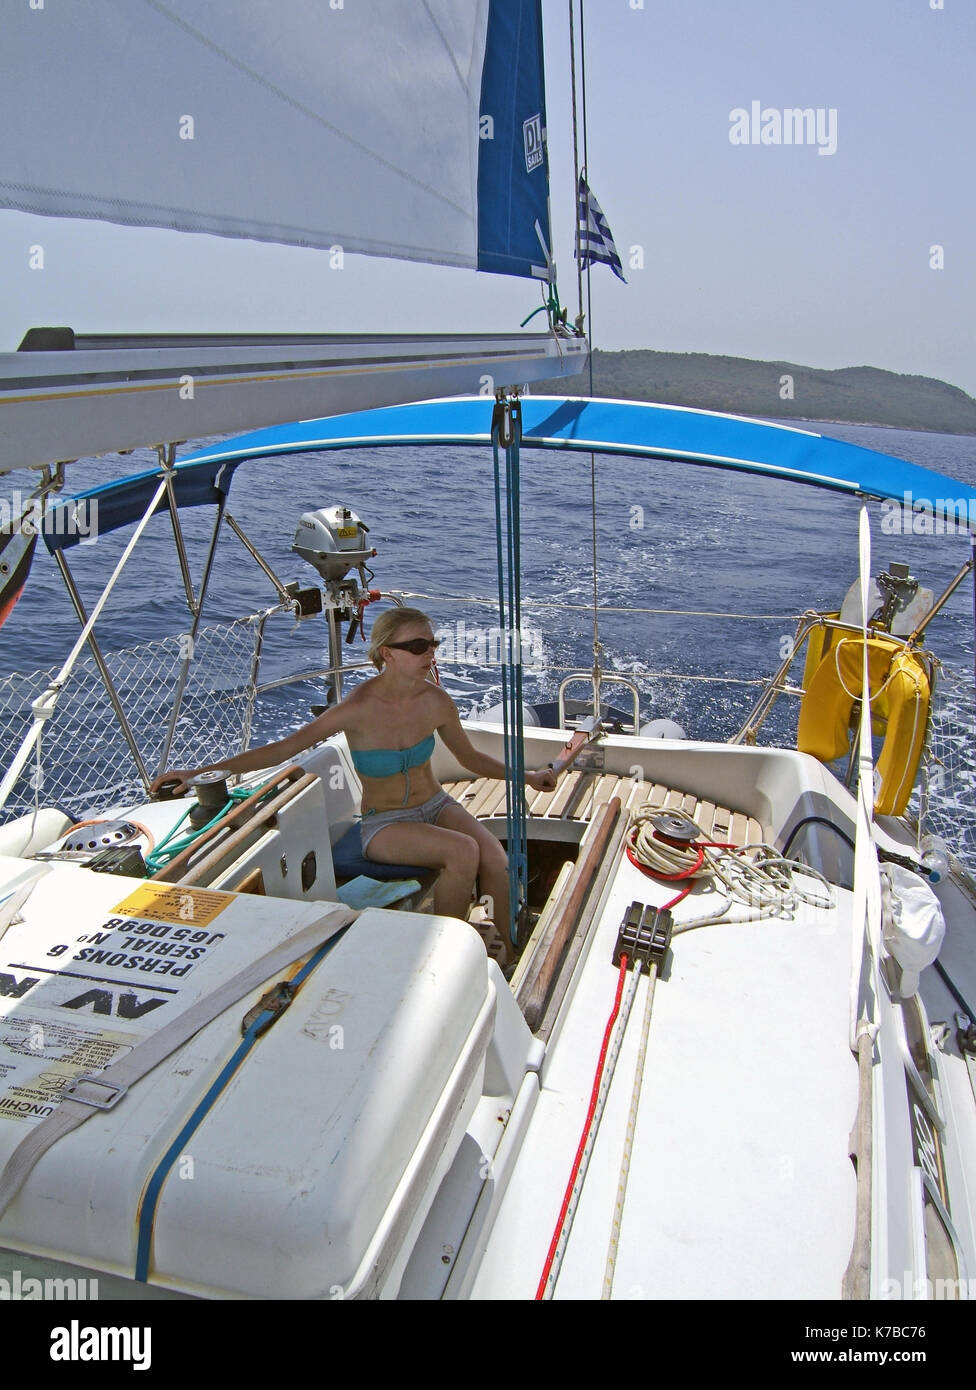 young woman sailing single handed in blue water yacht - Stock Image